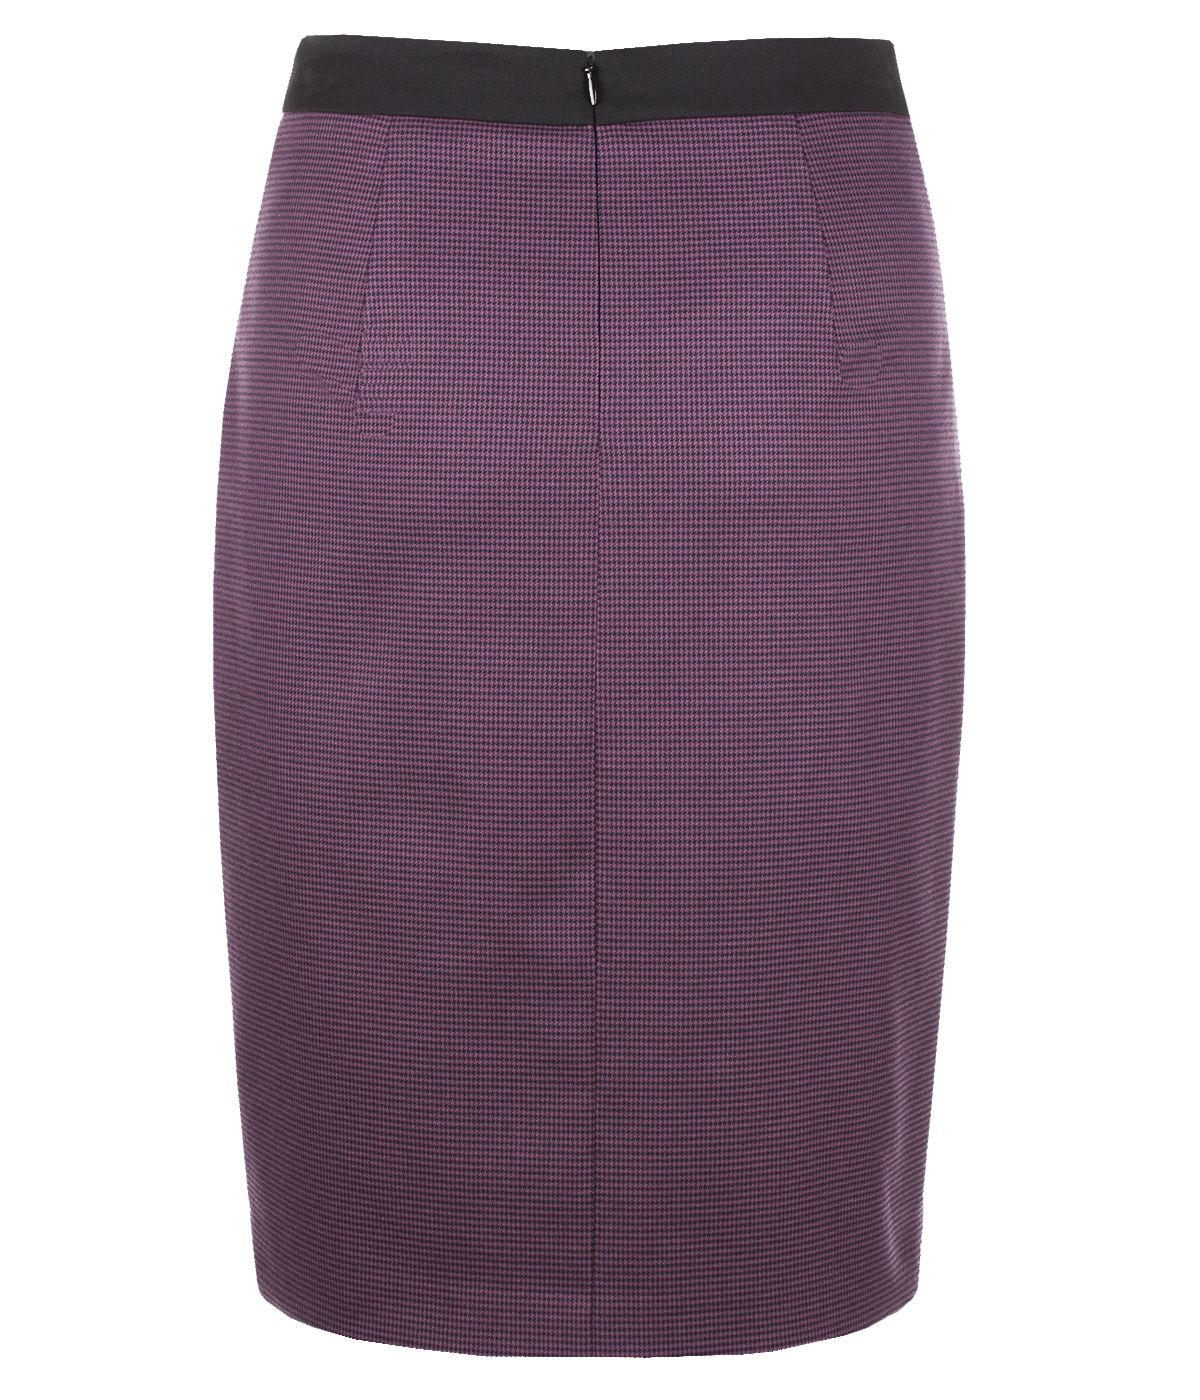 PENCIL SKIRT WITH FRONT SLIT 1